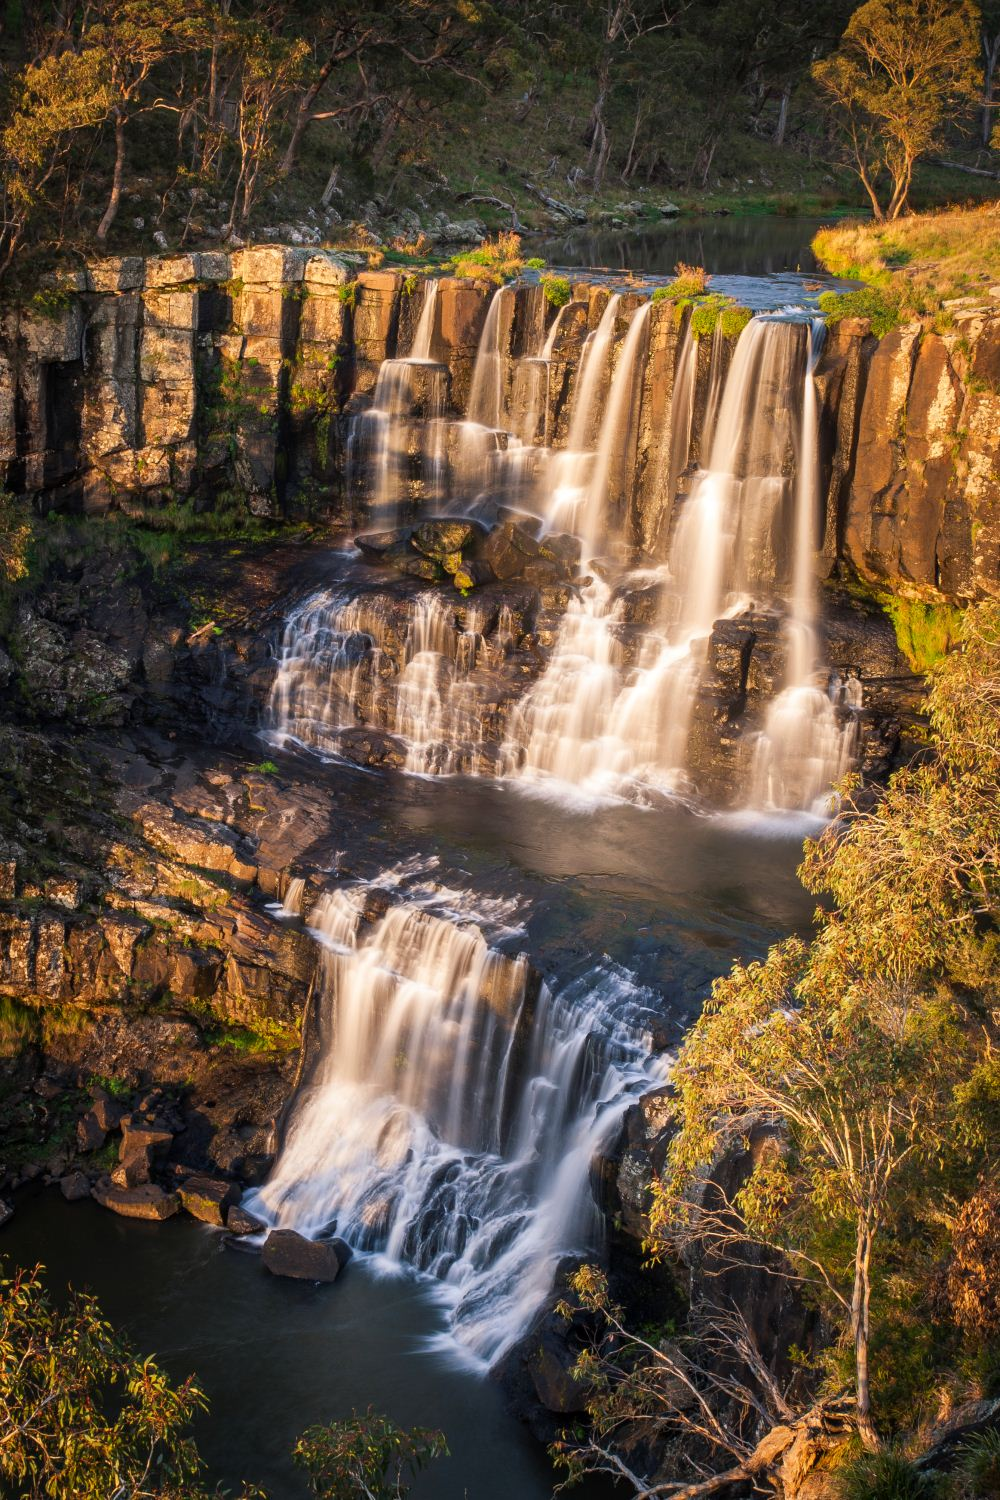 Ebor Falls, New England Tablelands